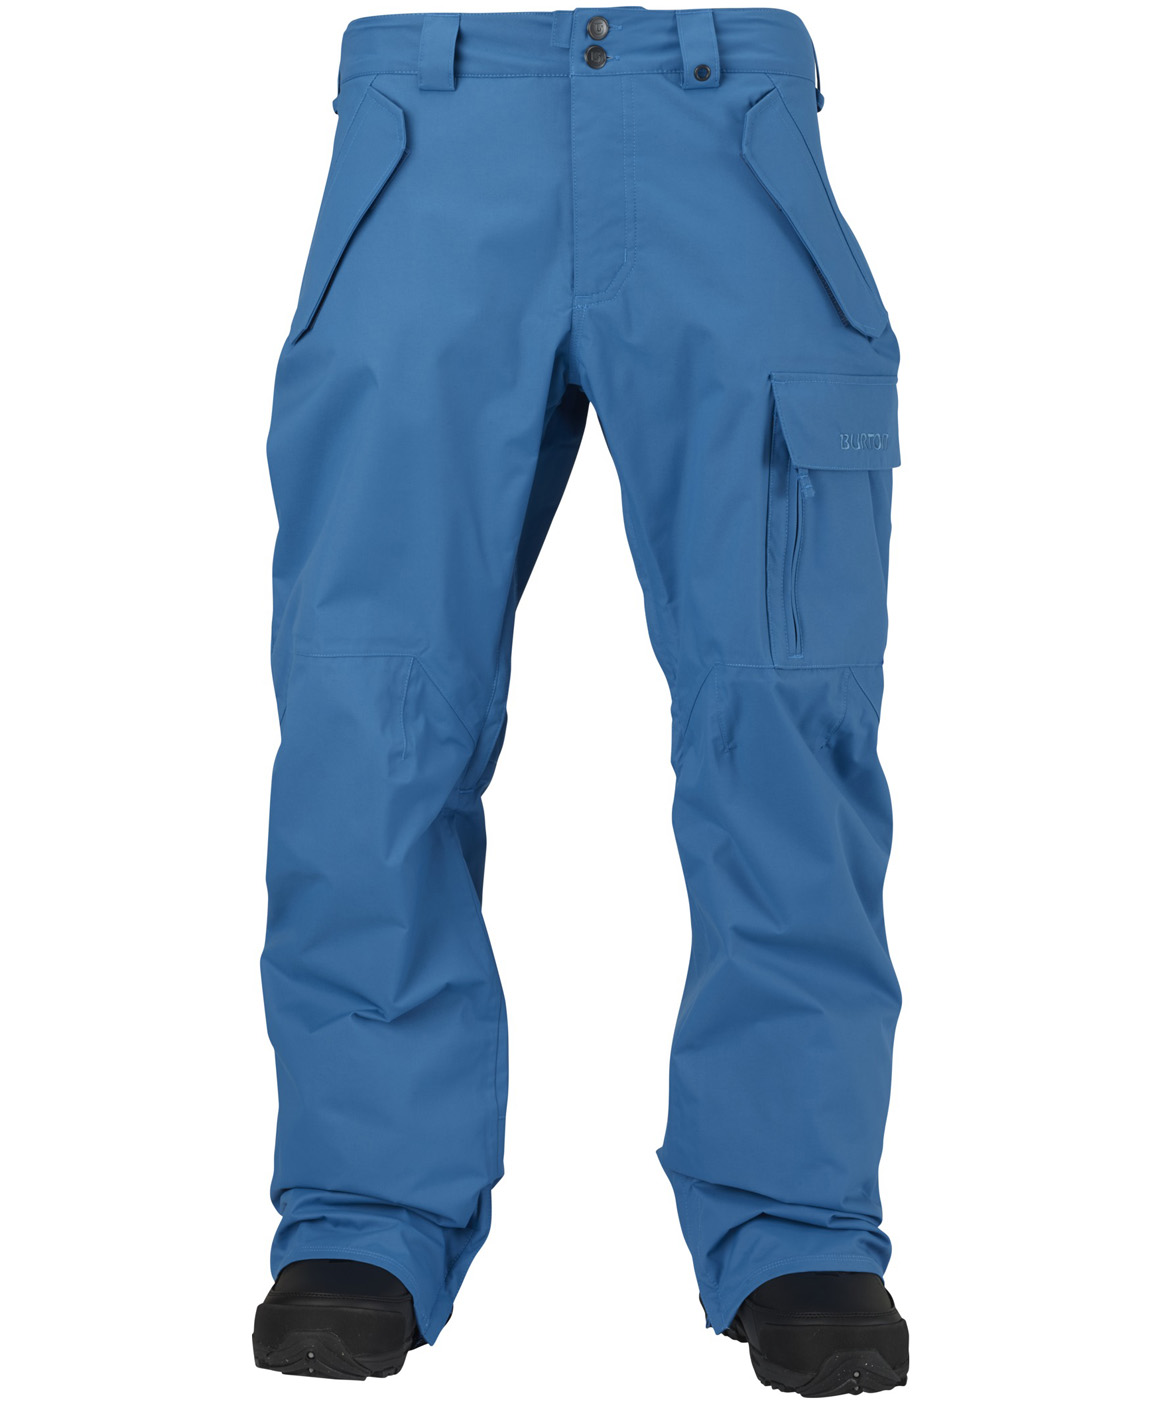 COVER PANT BLUE 16H